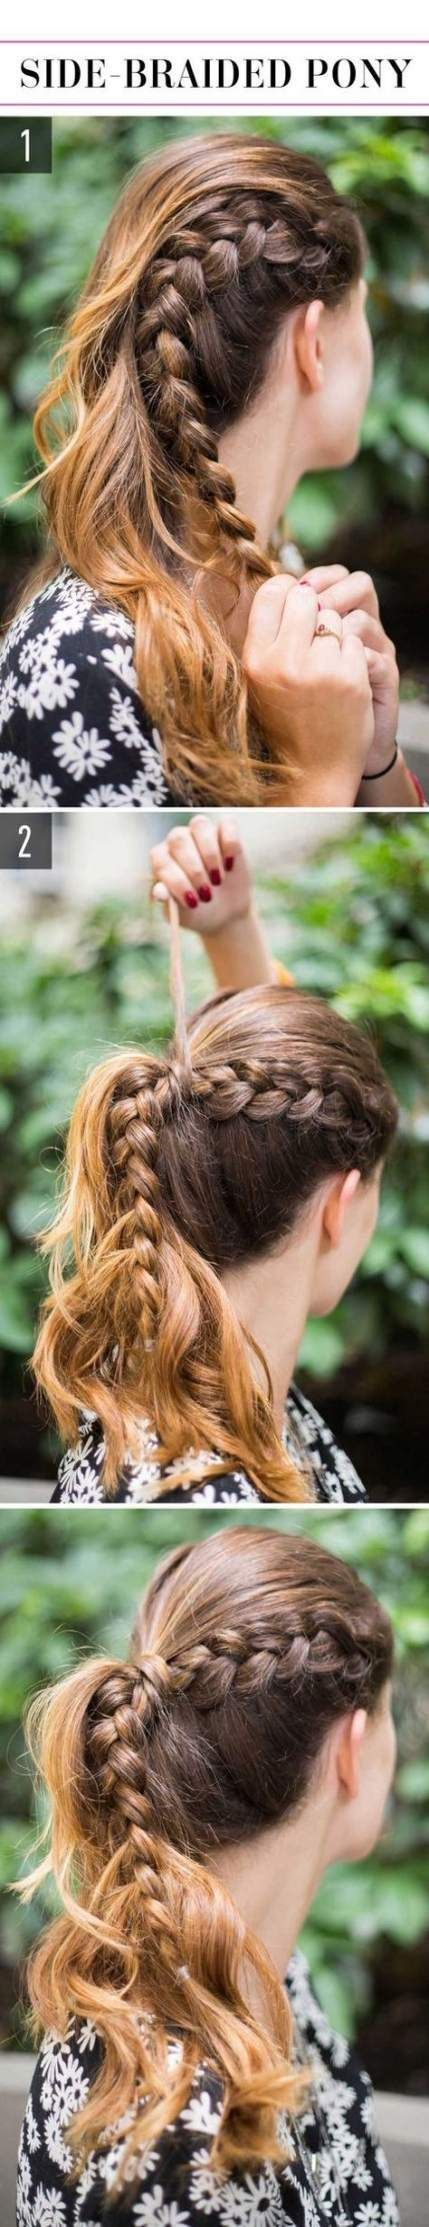 Hairstyles Lazy Girl Easy 35+ Ideas - #hairstyles #ideas - #HairstyleLazyGirl